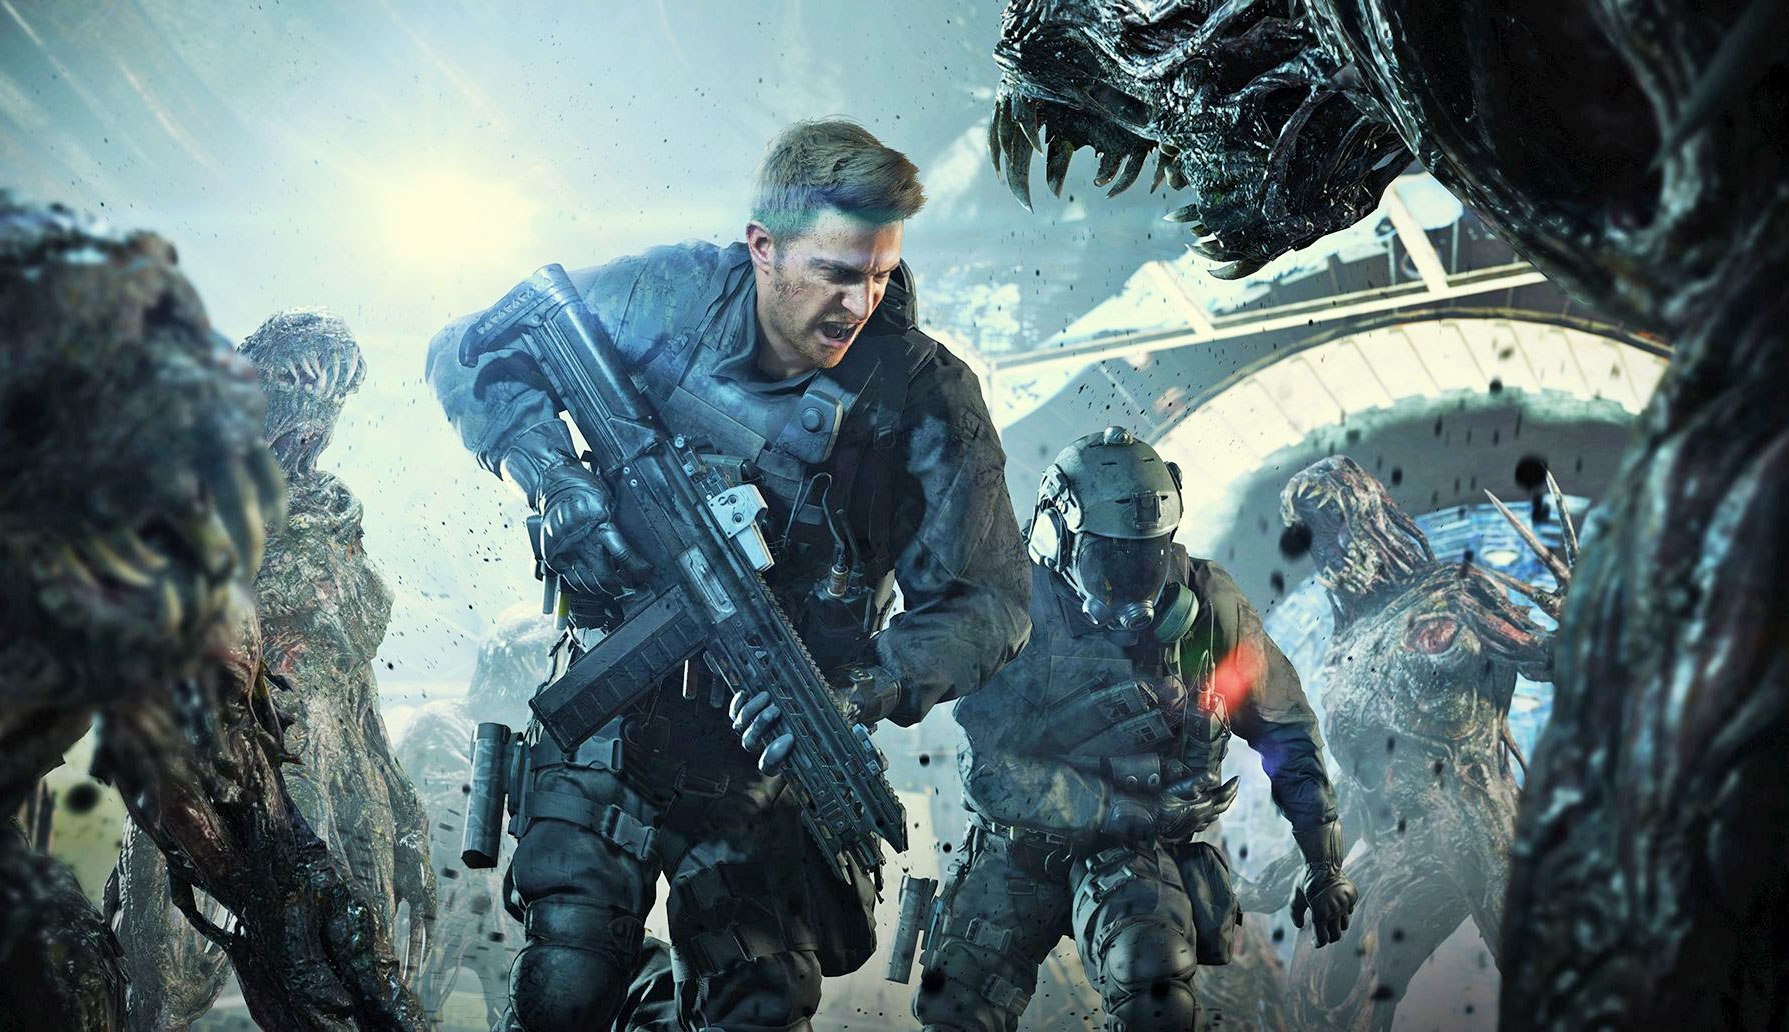 Chris Redfield is back in free 'Resident Evil 7' DLC this December | DeviceDaily.com